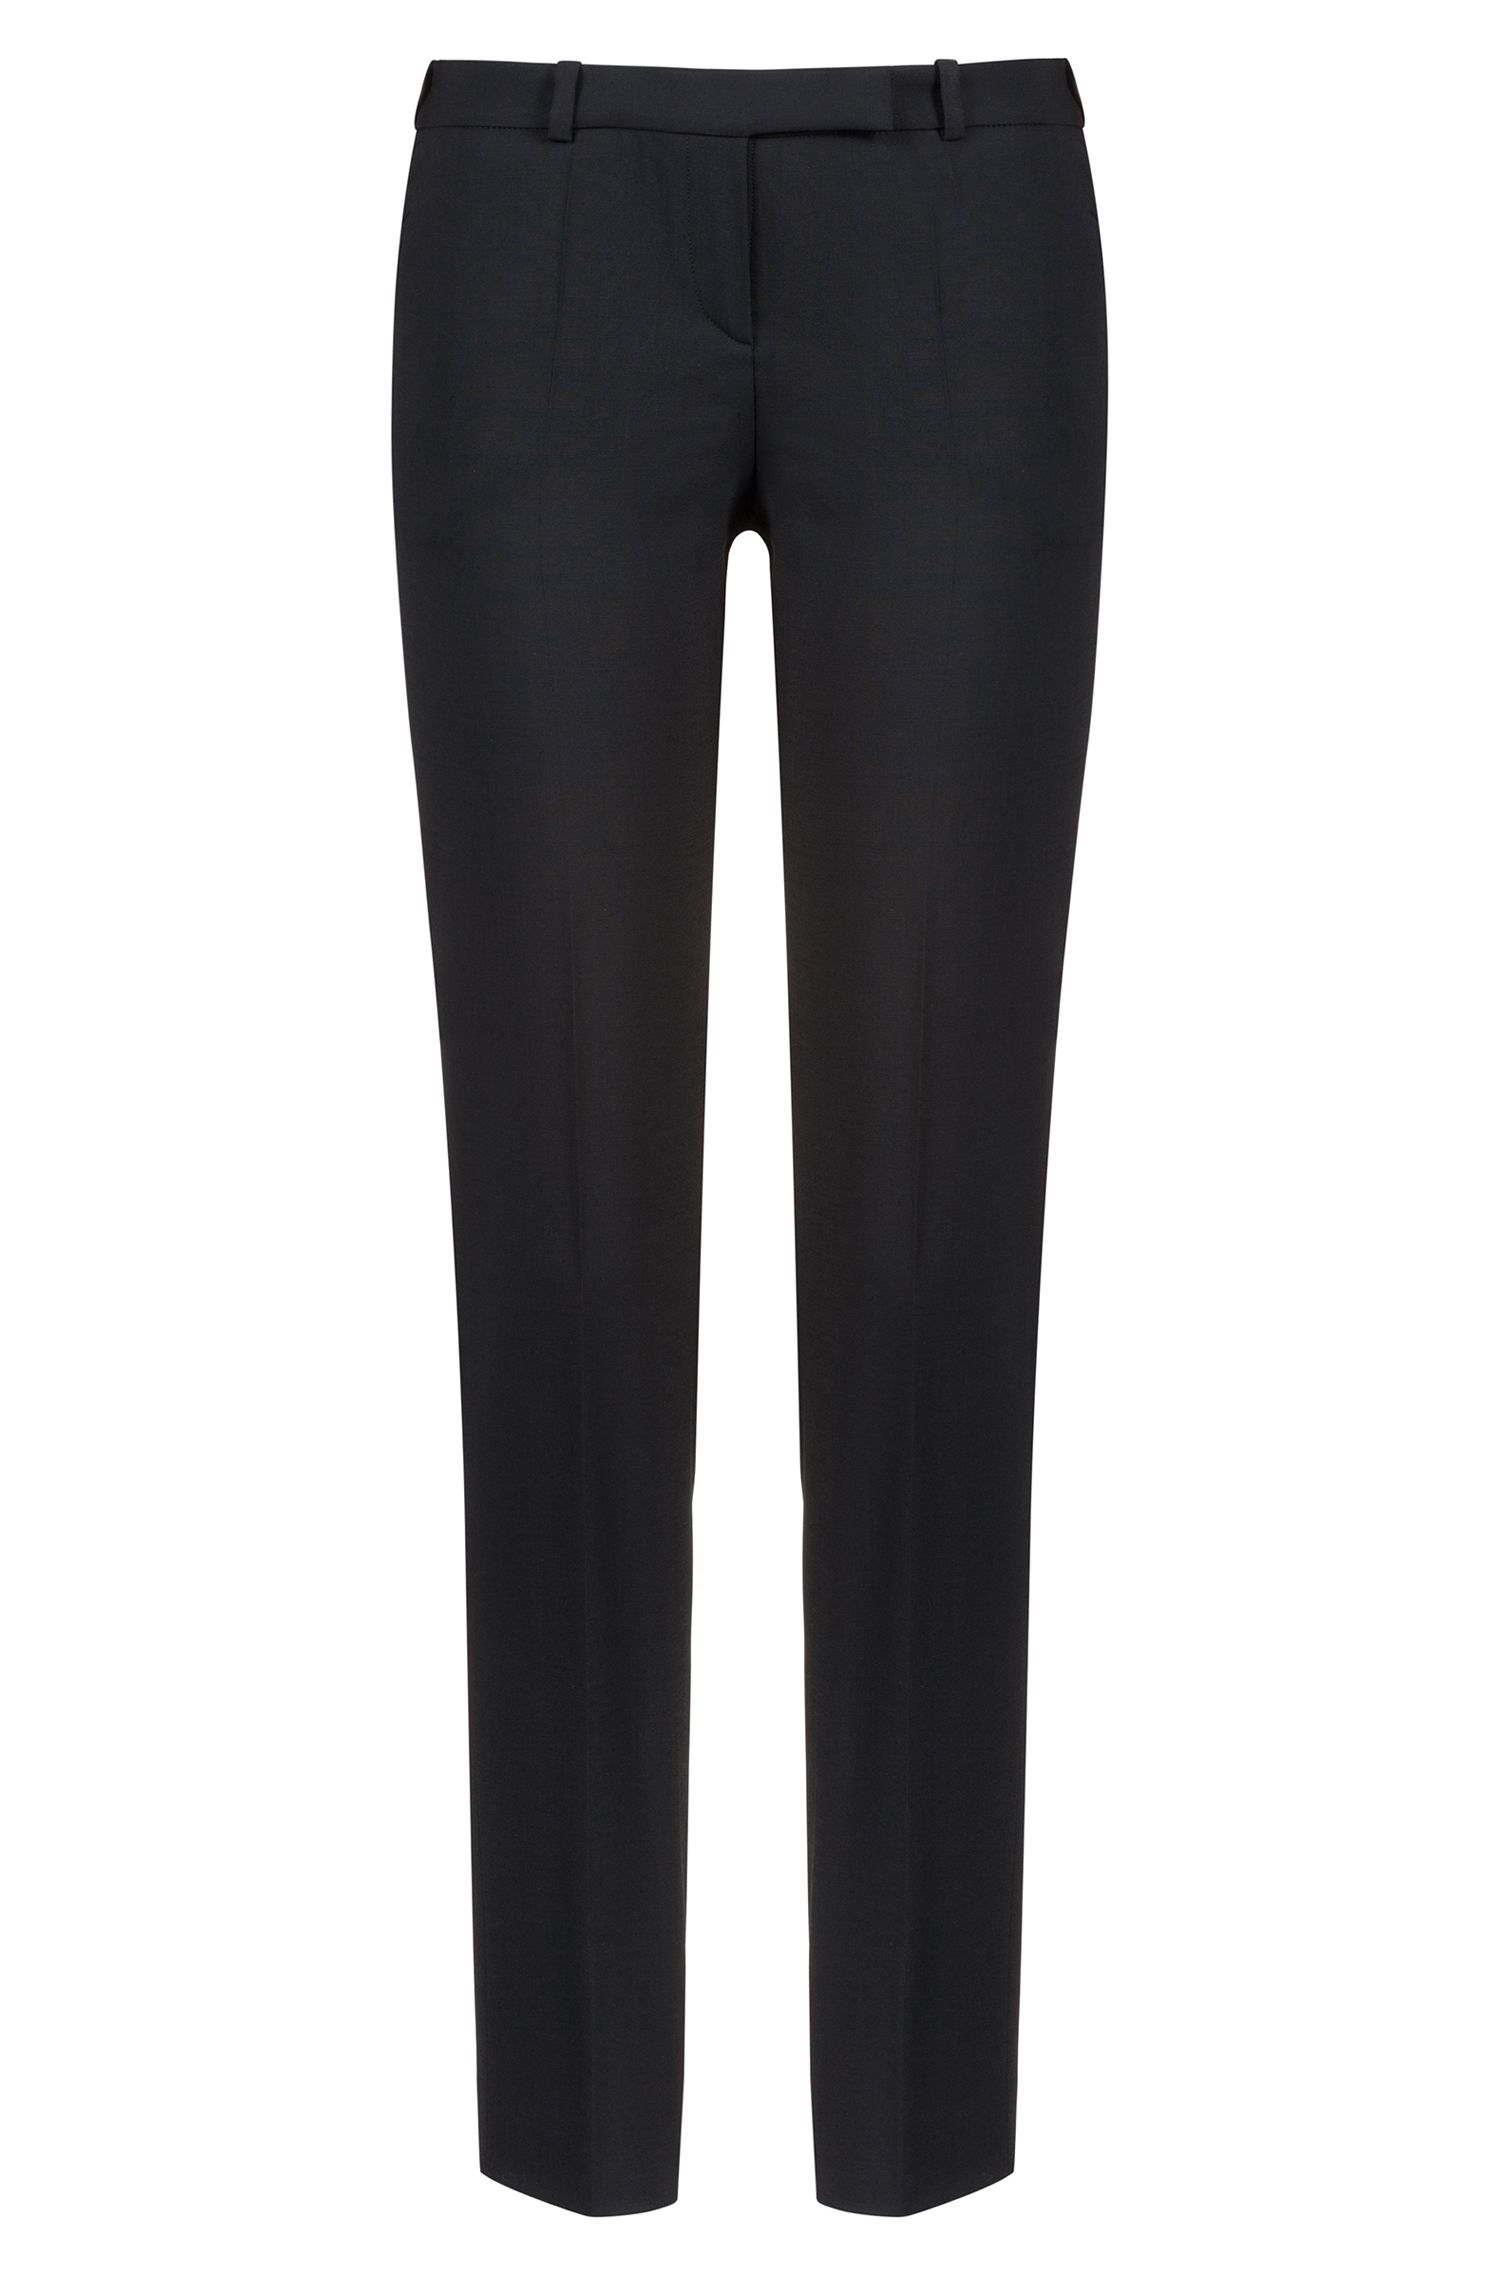 Pantalon HUGO Femme Regular Fit en laine vierge stretch